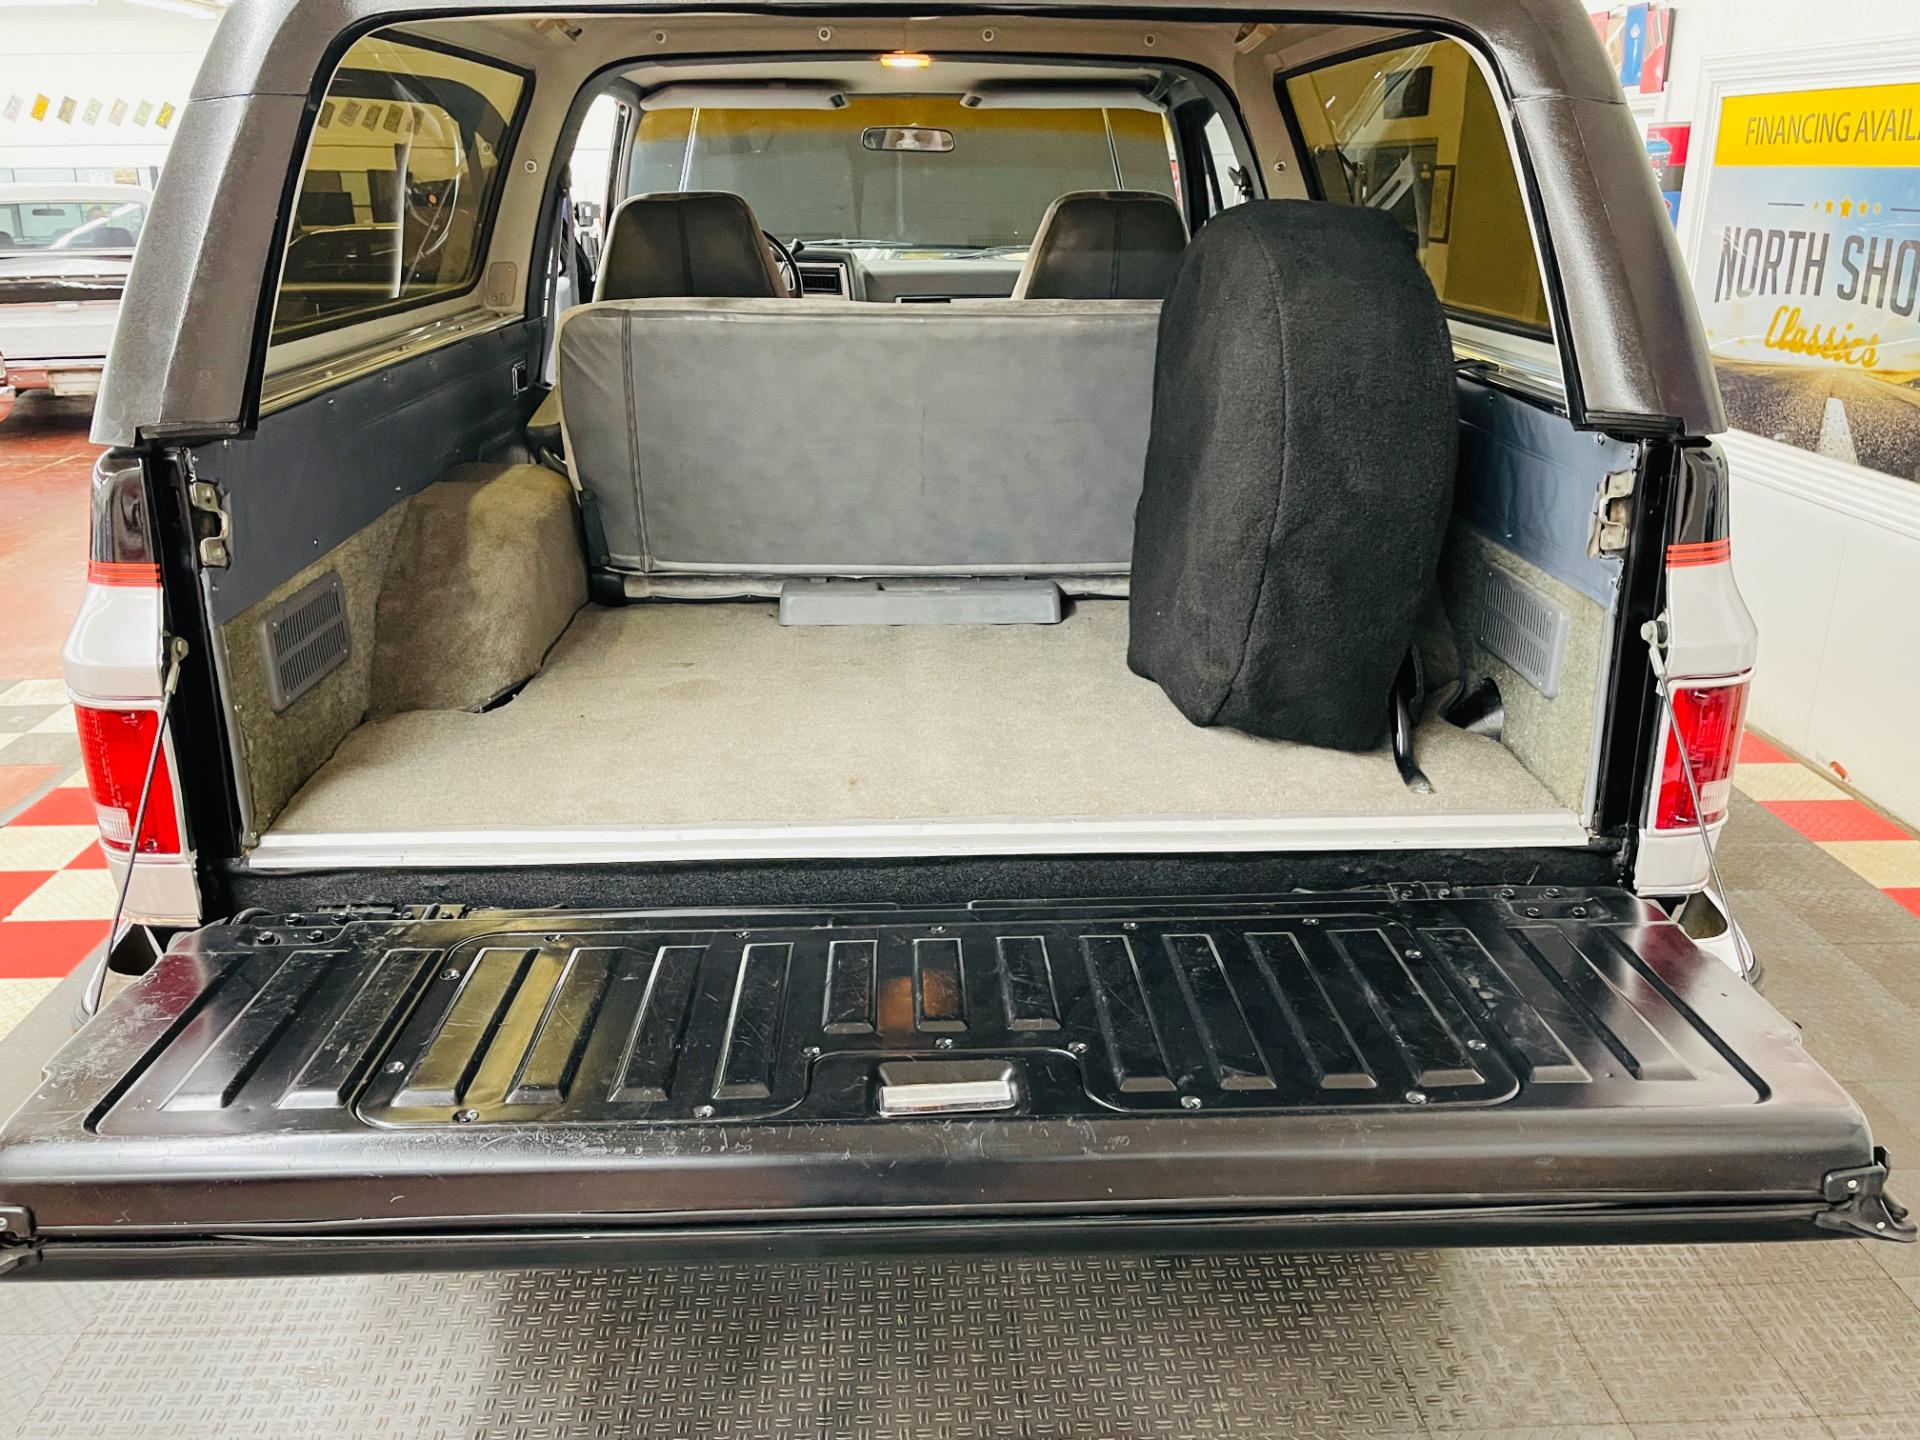 Used 1989 Chevrolet Blazer - K5 4X4 - BRAND NEW LIFT KIT - SUPER CLEAN - SEE VIDEO - | Mundelein, IL